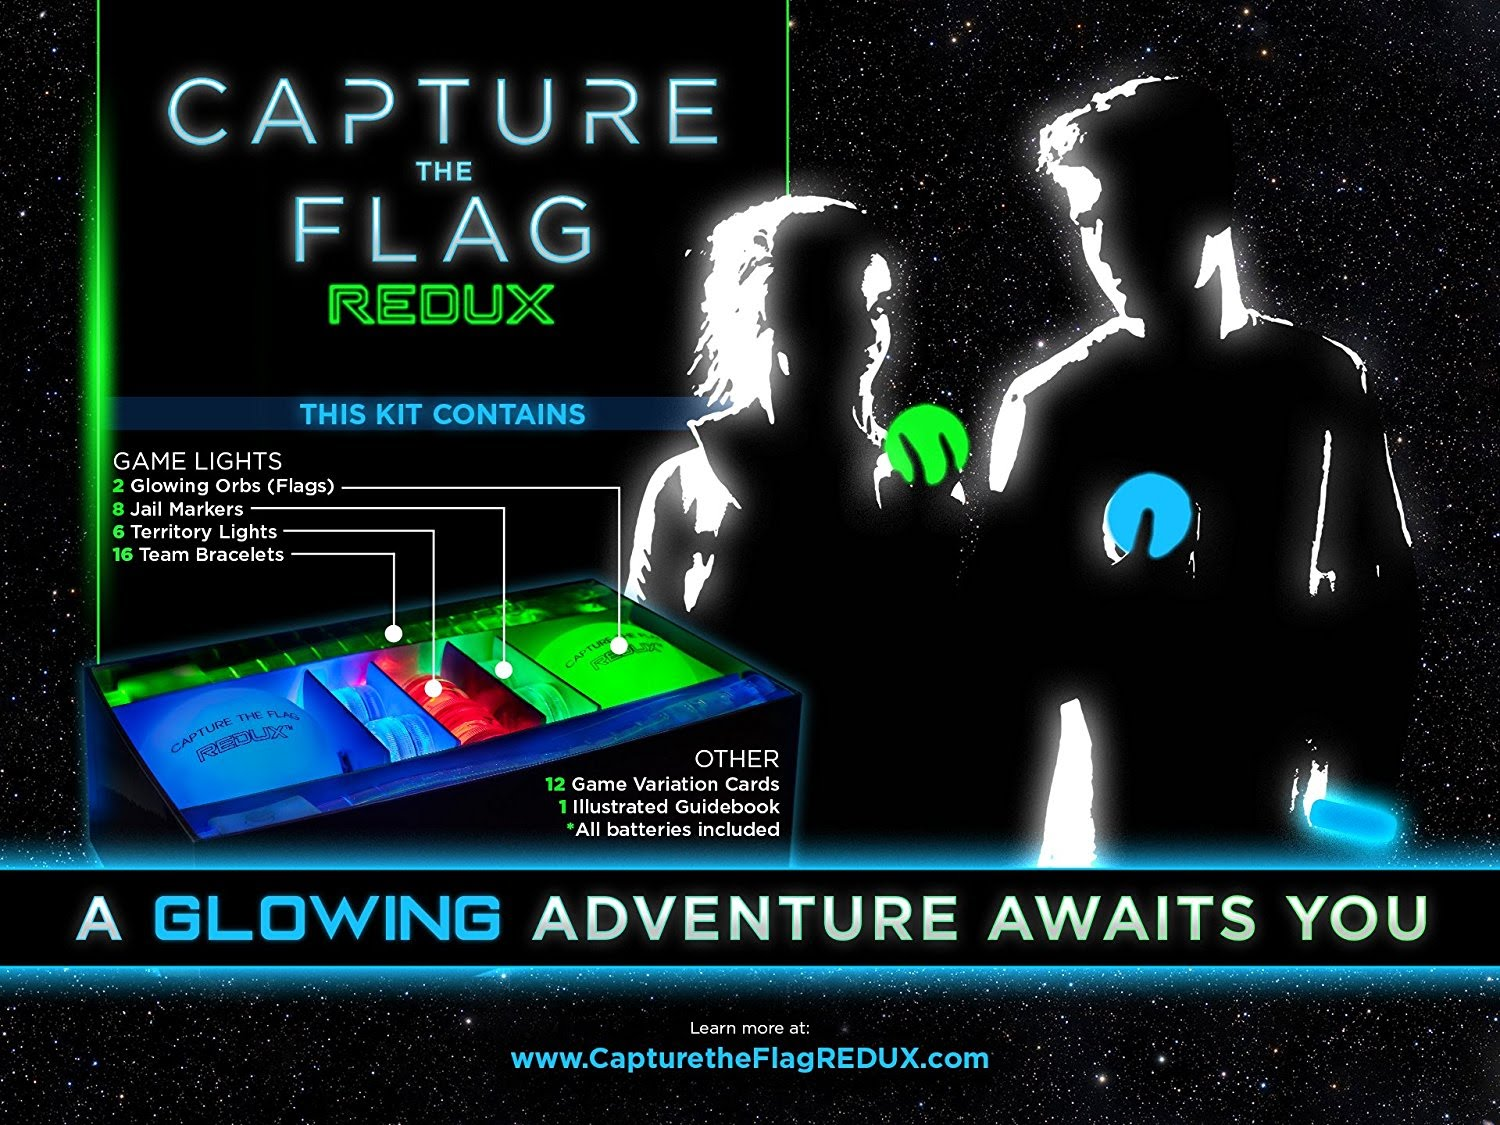 Capture the Flag REDUX Coupon Codes - 50% off Capture the